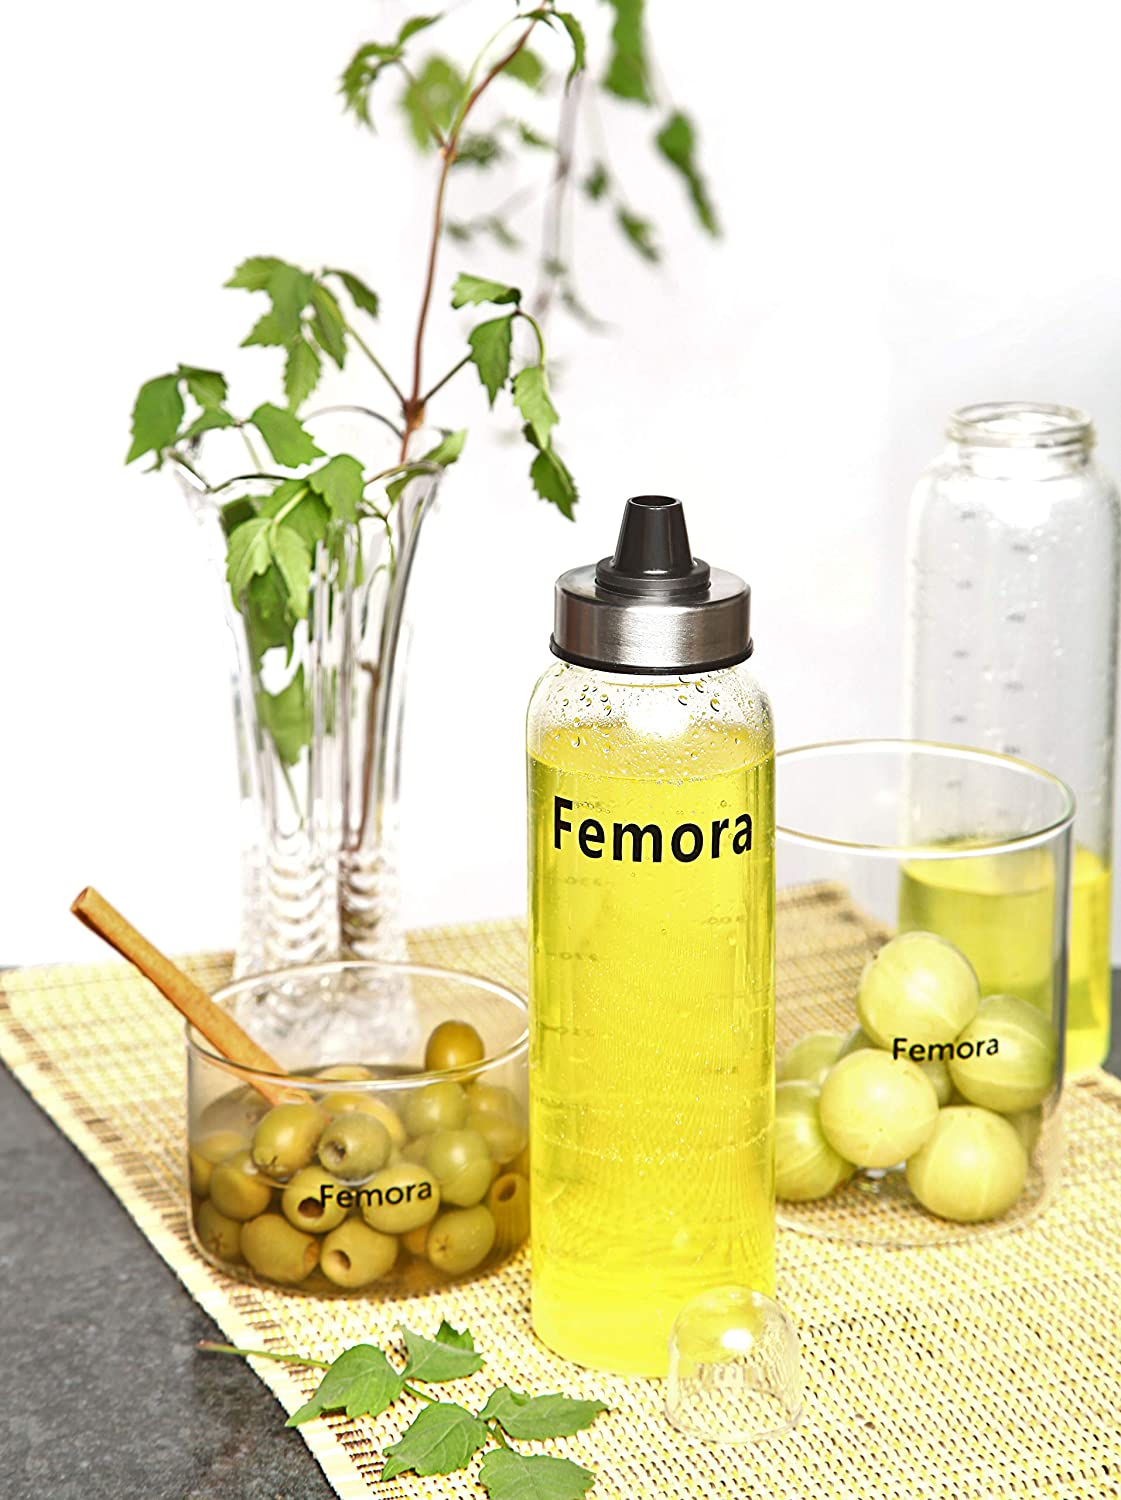 Femora Borosilicate Glass Spice Jar Bottle with Lid, 500 ML